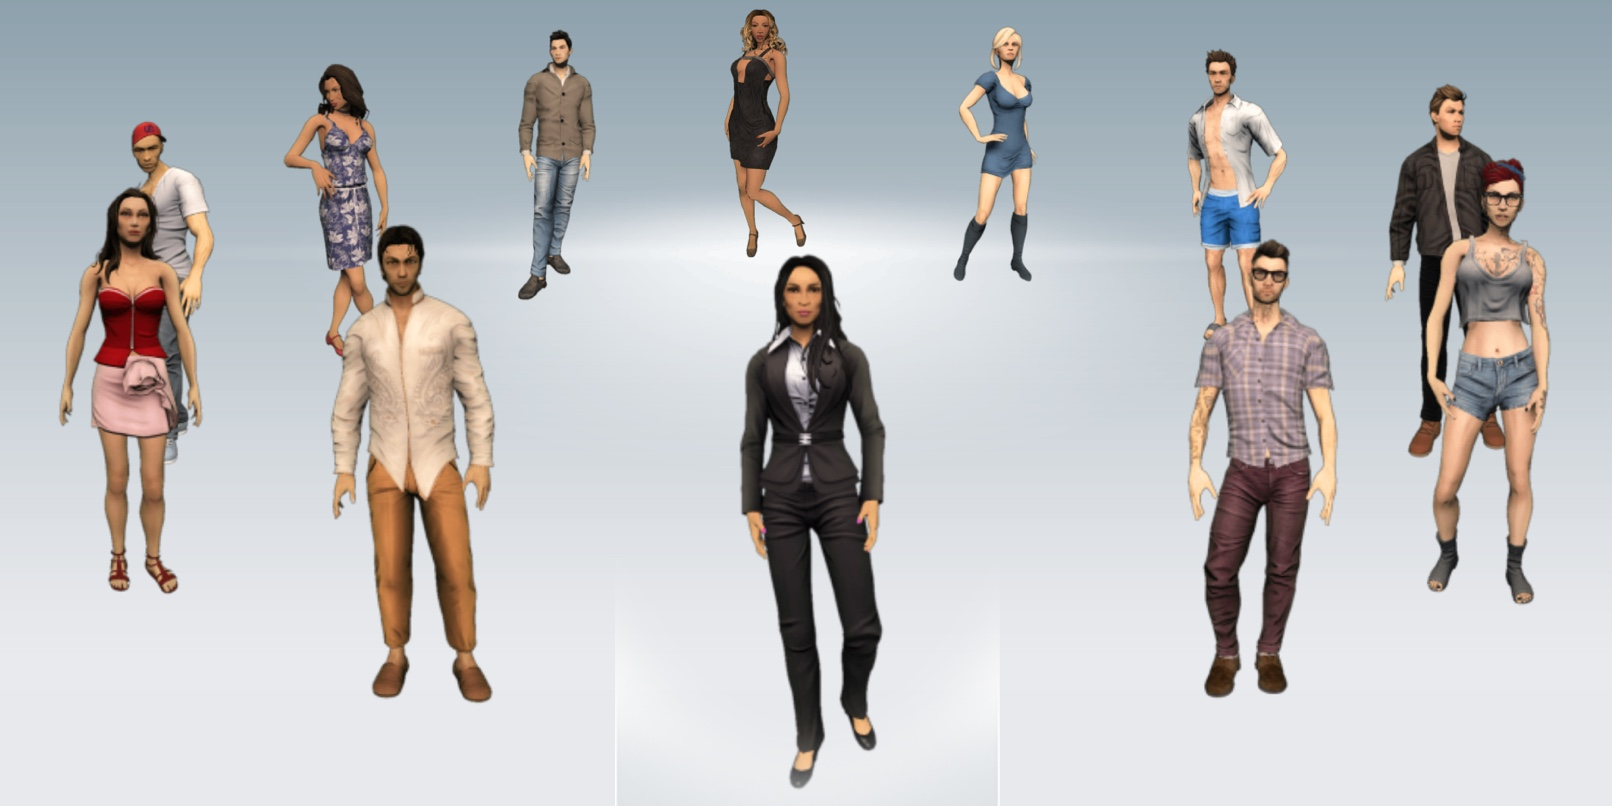 Think Second Life died? It has a higher GDP than some countries